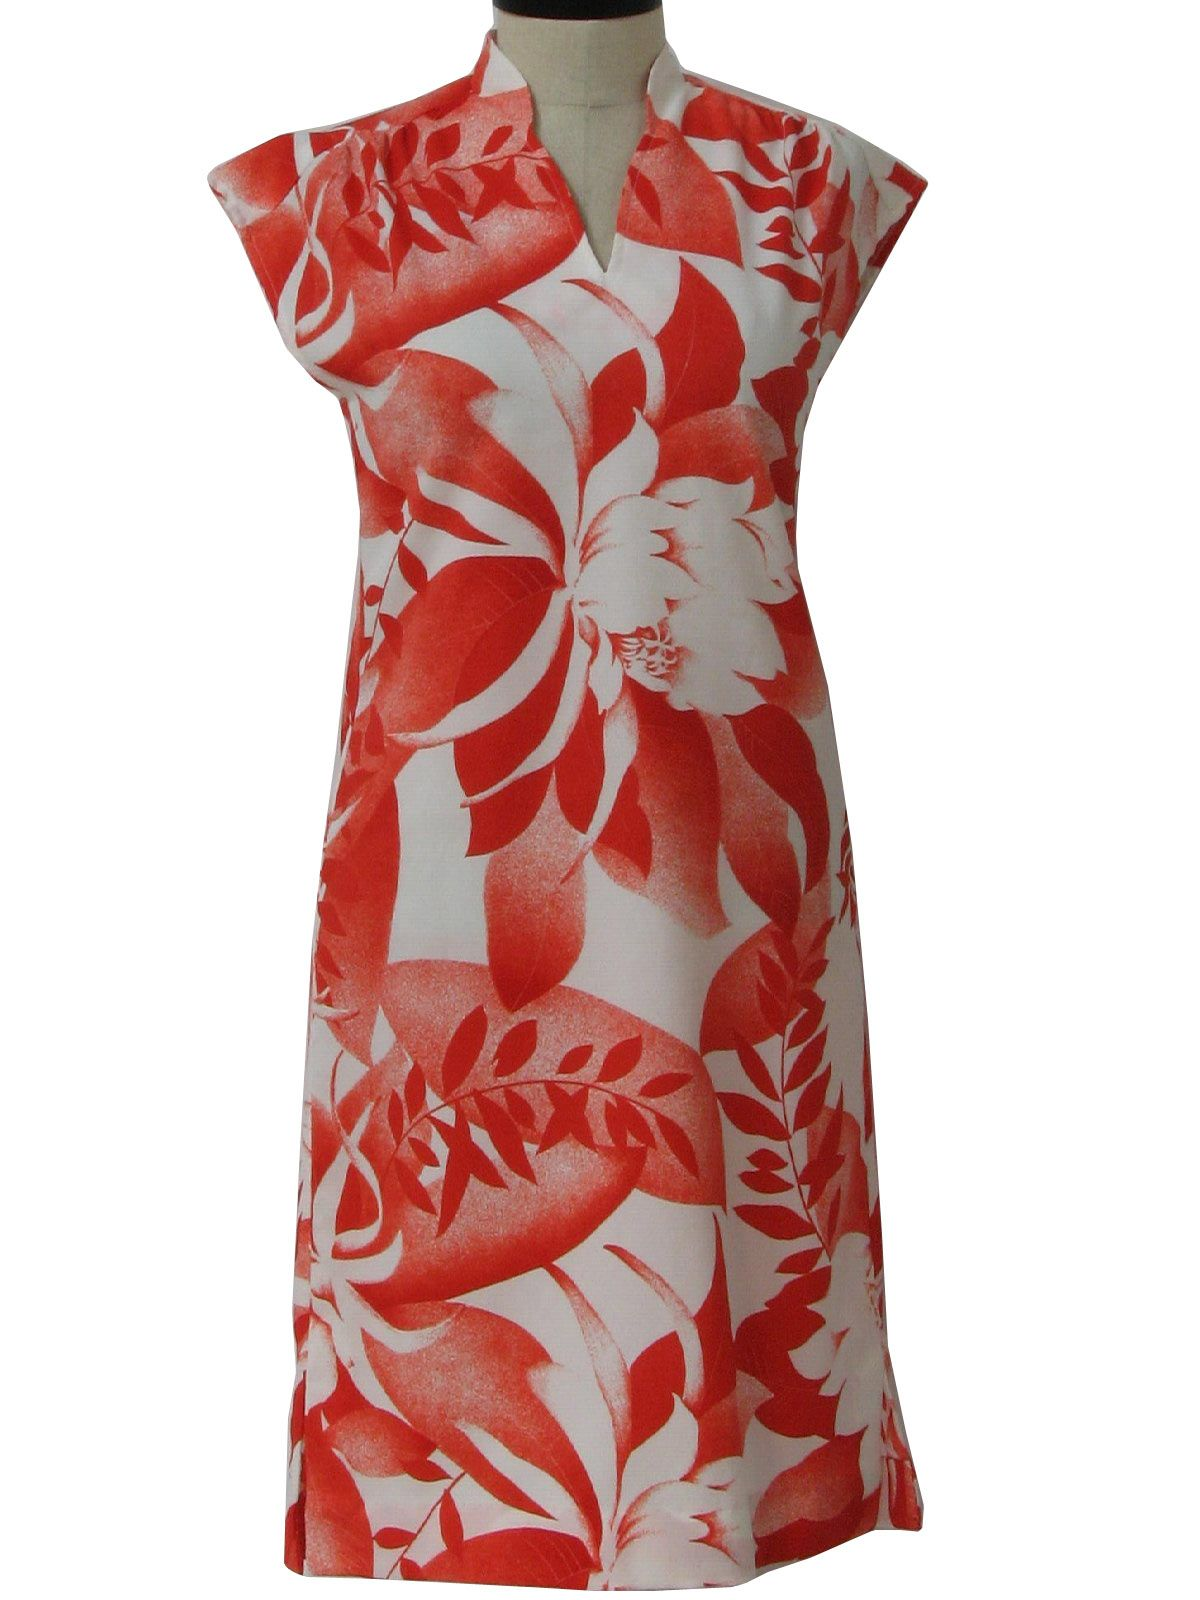 78  images about Hawaiian dress ideas on Pinterest - Loose dresses ...